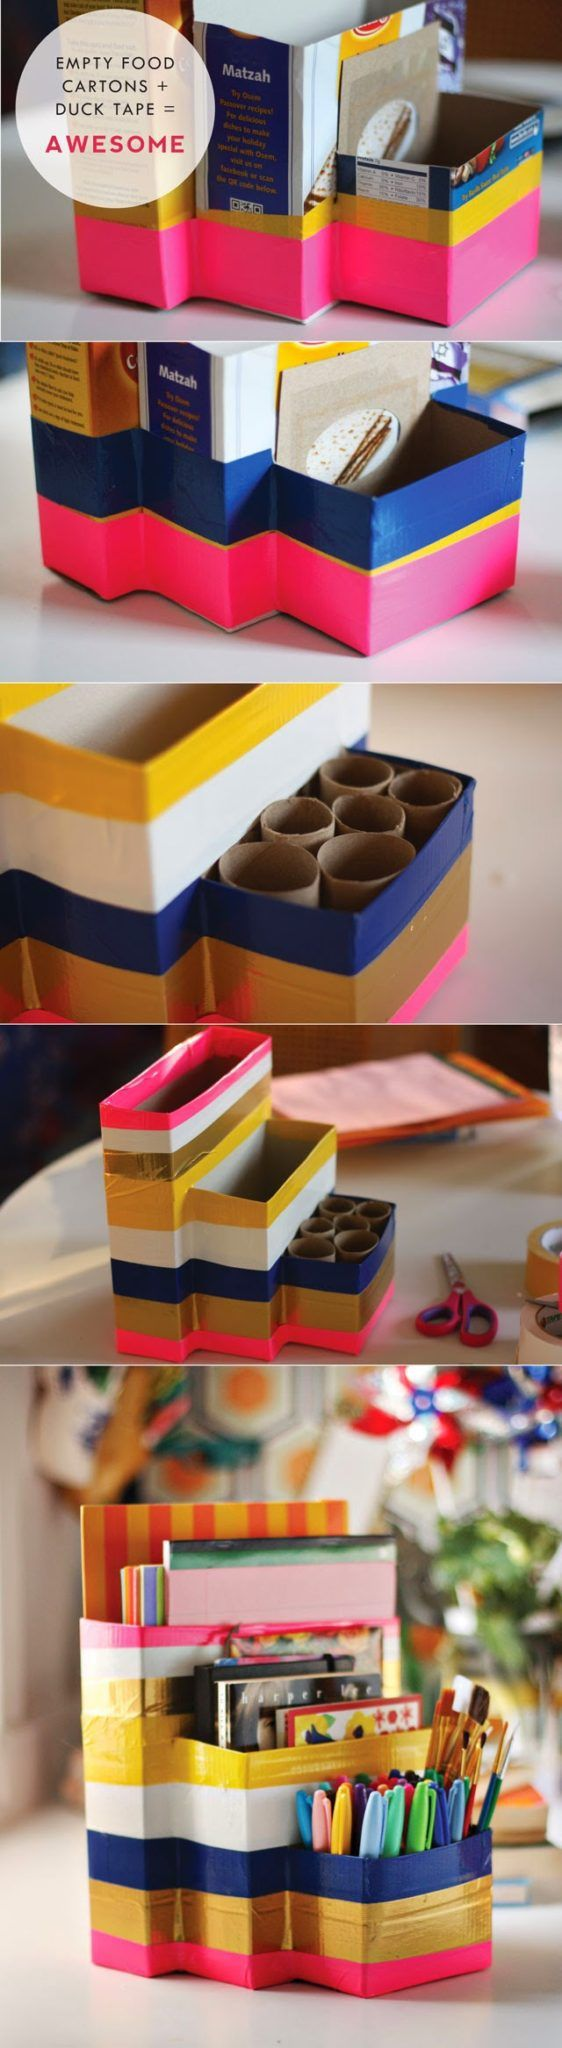 The BEST Back to School DIY Projects for Teens and Tweens {Locker Decorations, Customized School Supplies, Accessories and MORE!} – Page 3 – Dreaming in DIY